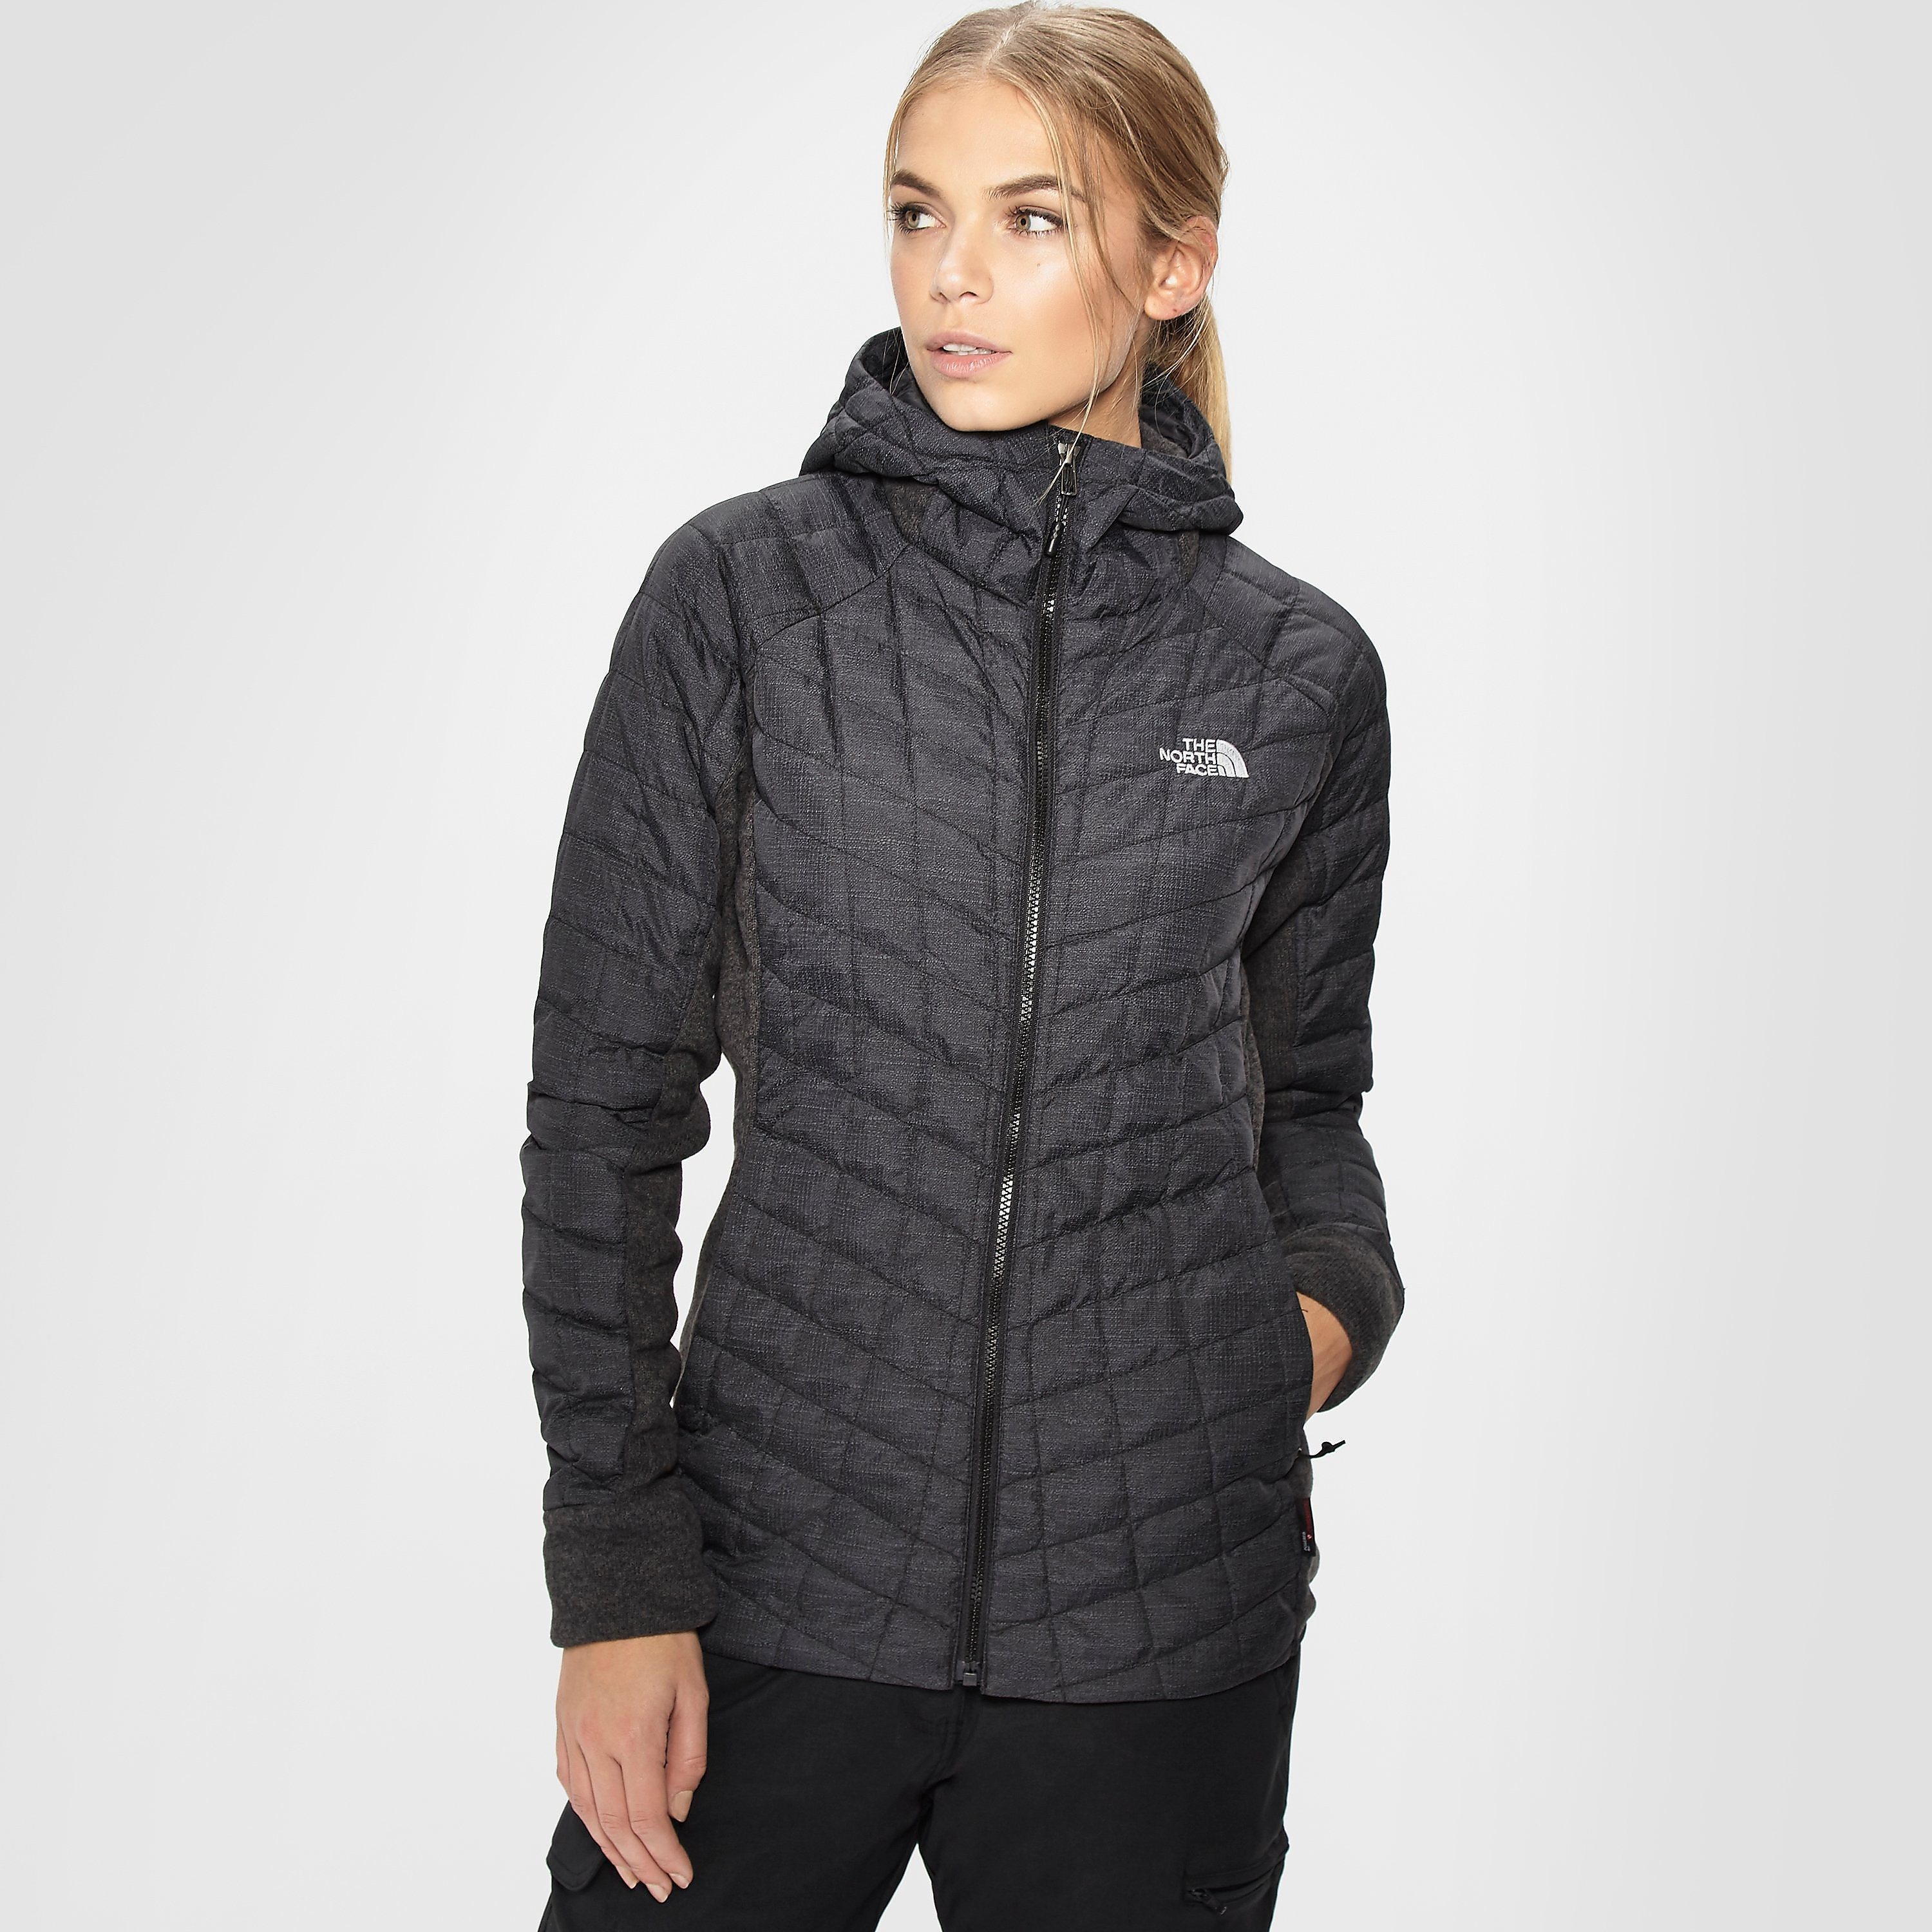 The north face Women's Thermoball Gordon Jacket